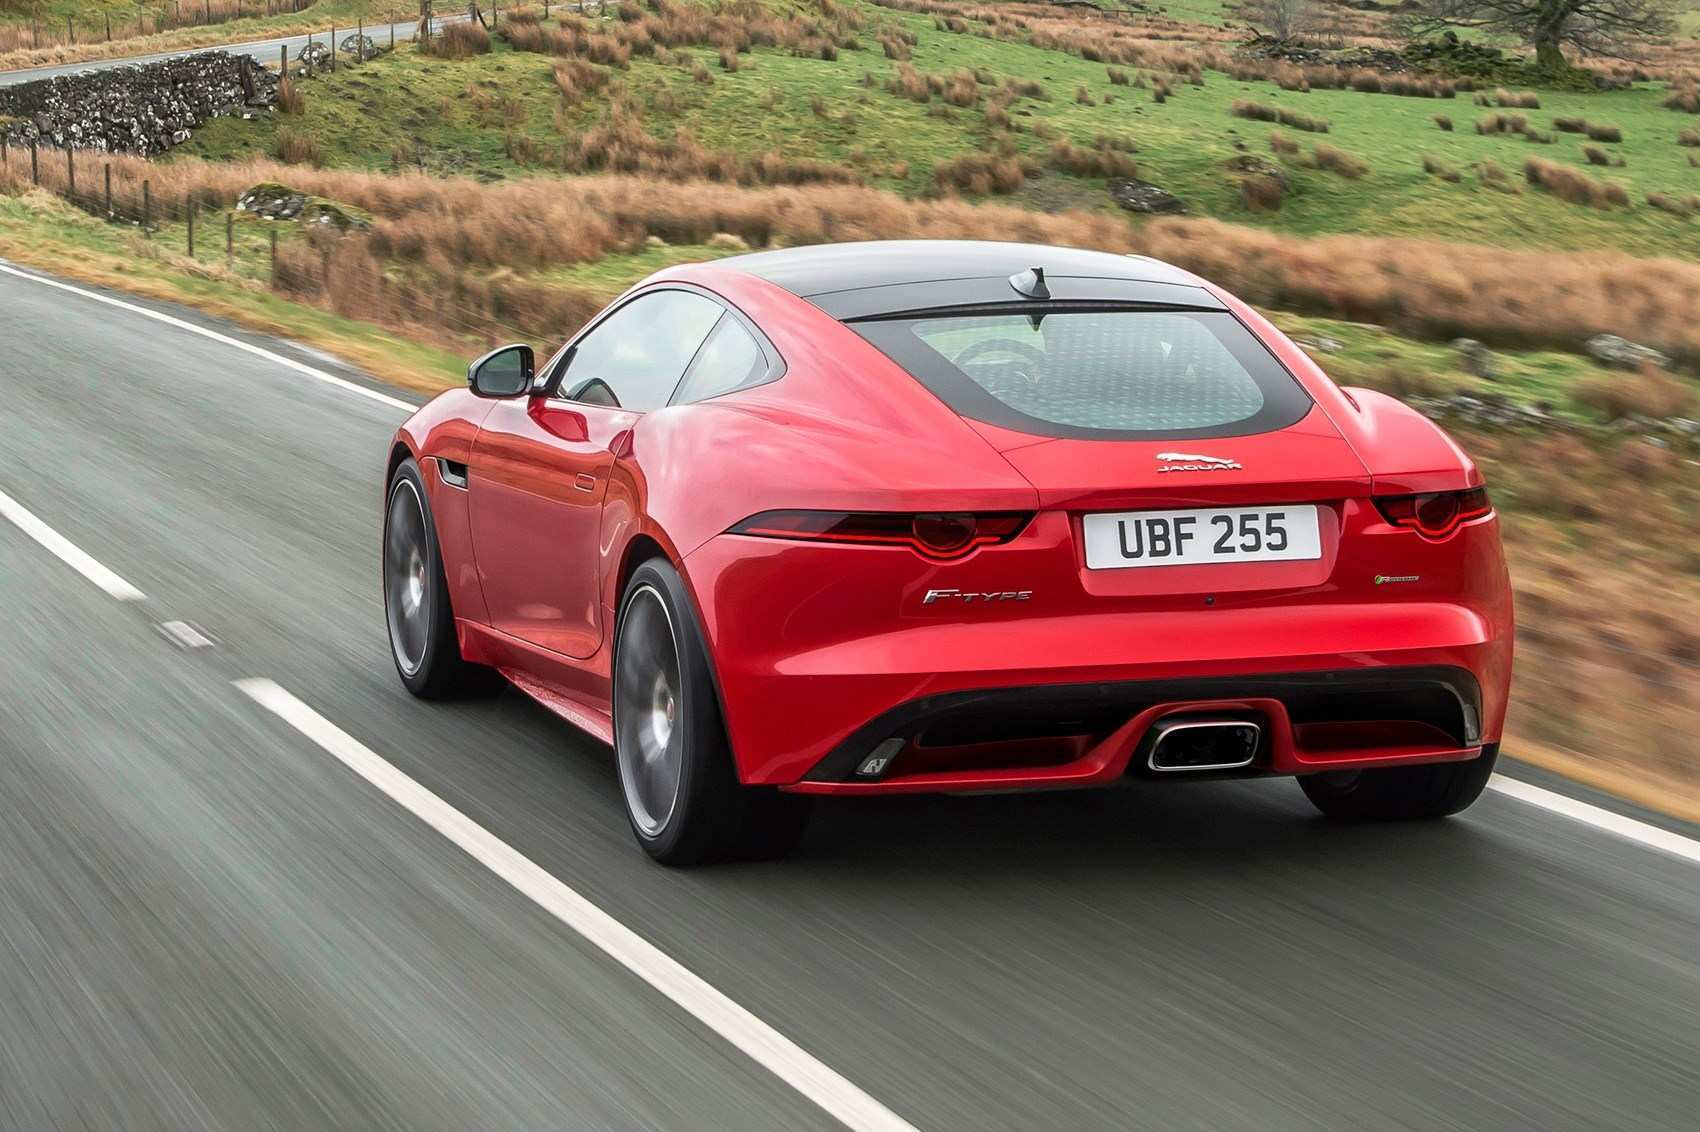 76 New 2020 Jaguar F Type Svr History with 2020 Jaguar F Type Svr